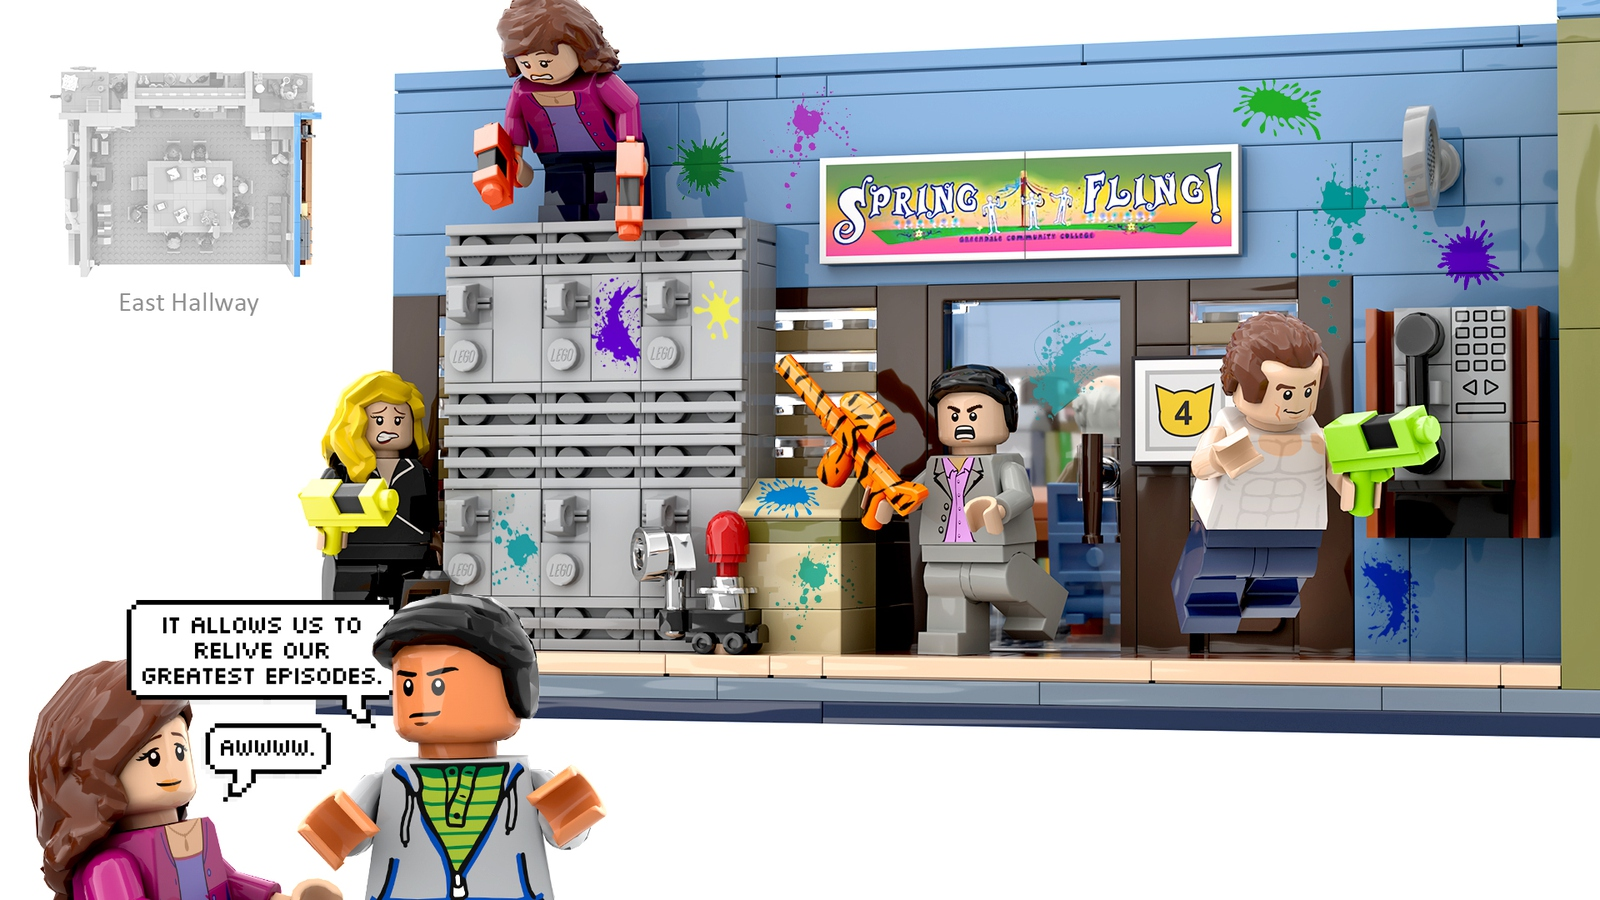 lego-ideas-community-greendale-community-college-bulldoozer21-3 zusammengebaut.com